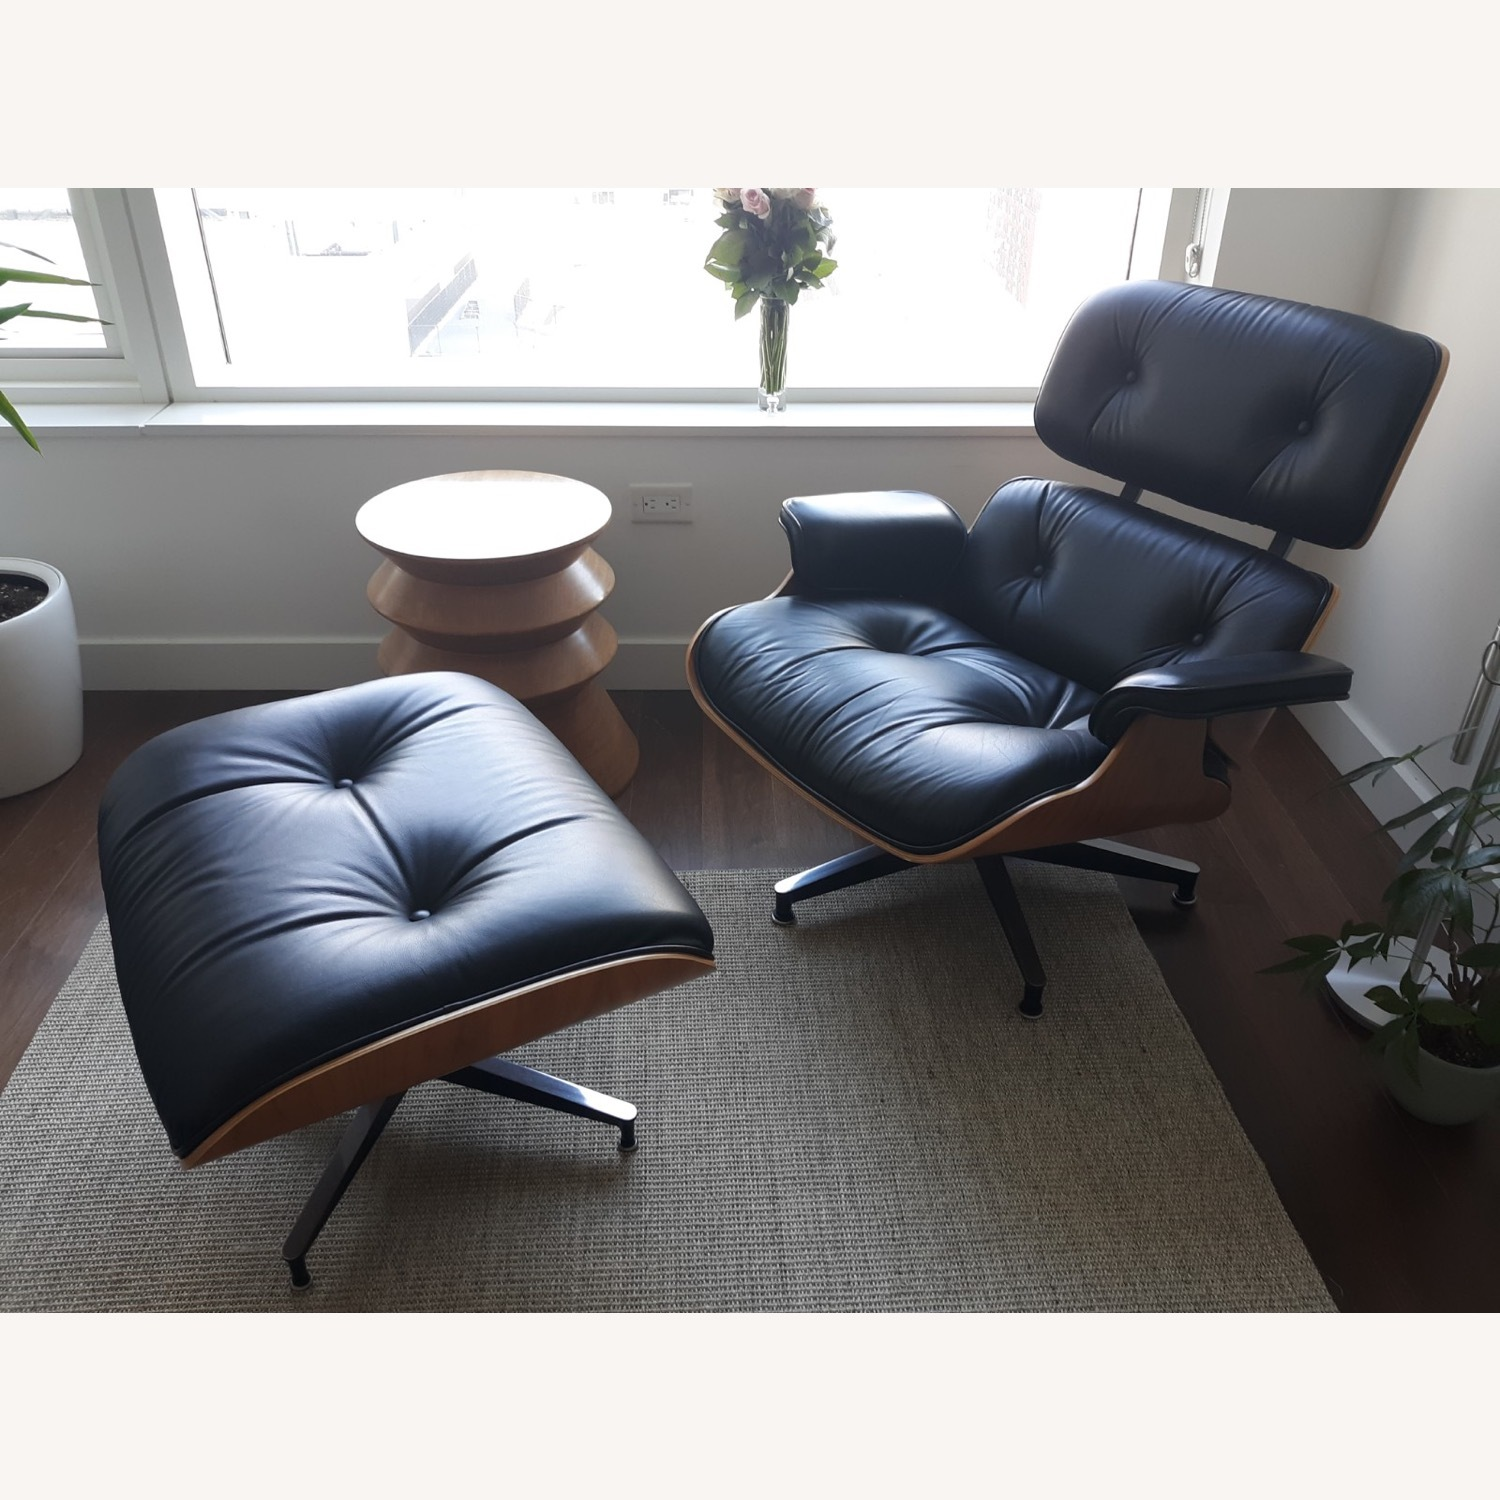 Herman Miller Eames Lounge Chair and Ottoman - image-34